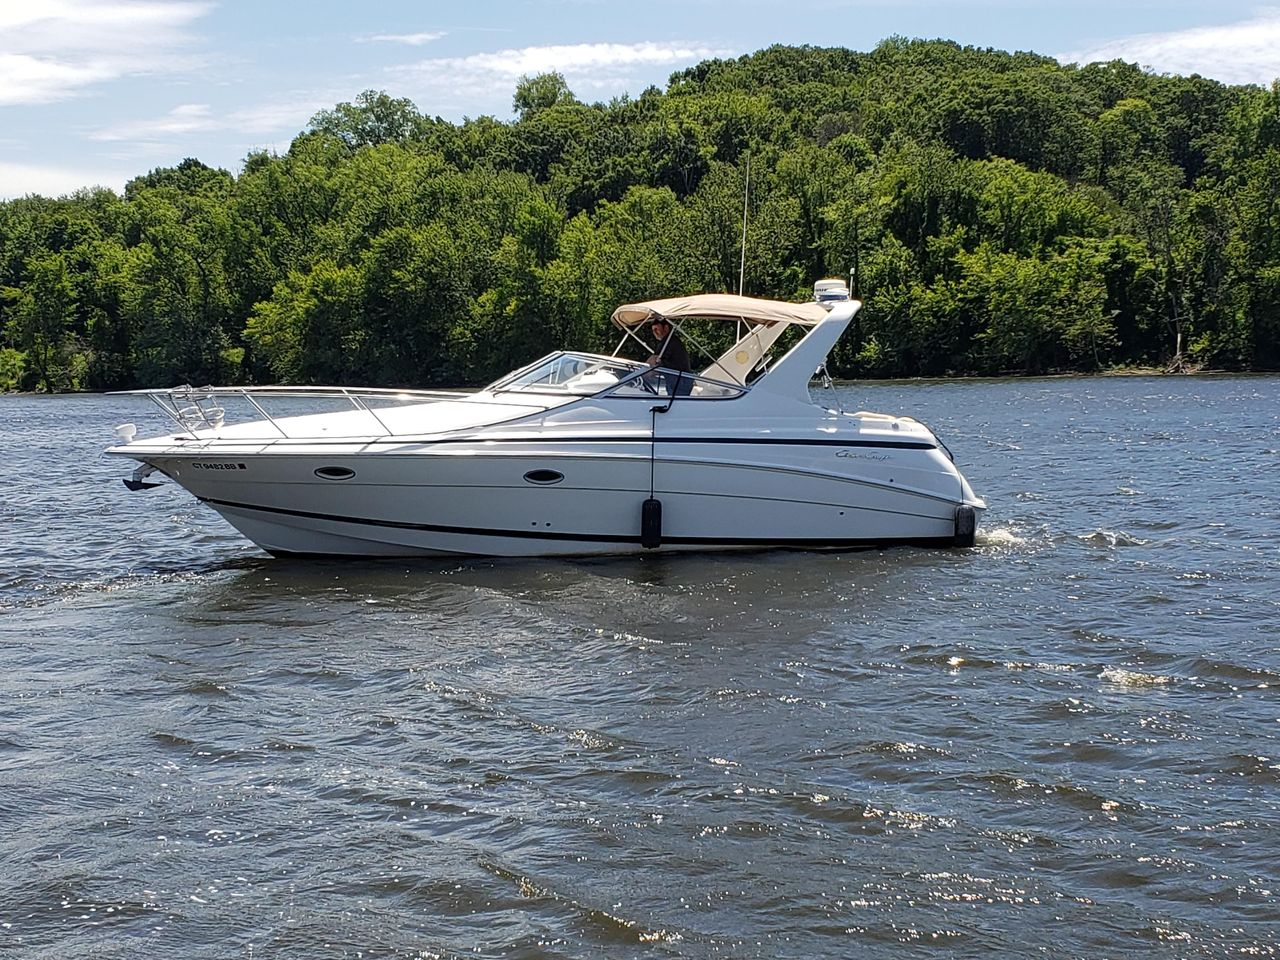 1999 Used Chris-Craft 328 Express Cruiser Boat For Sale